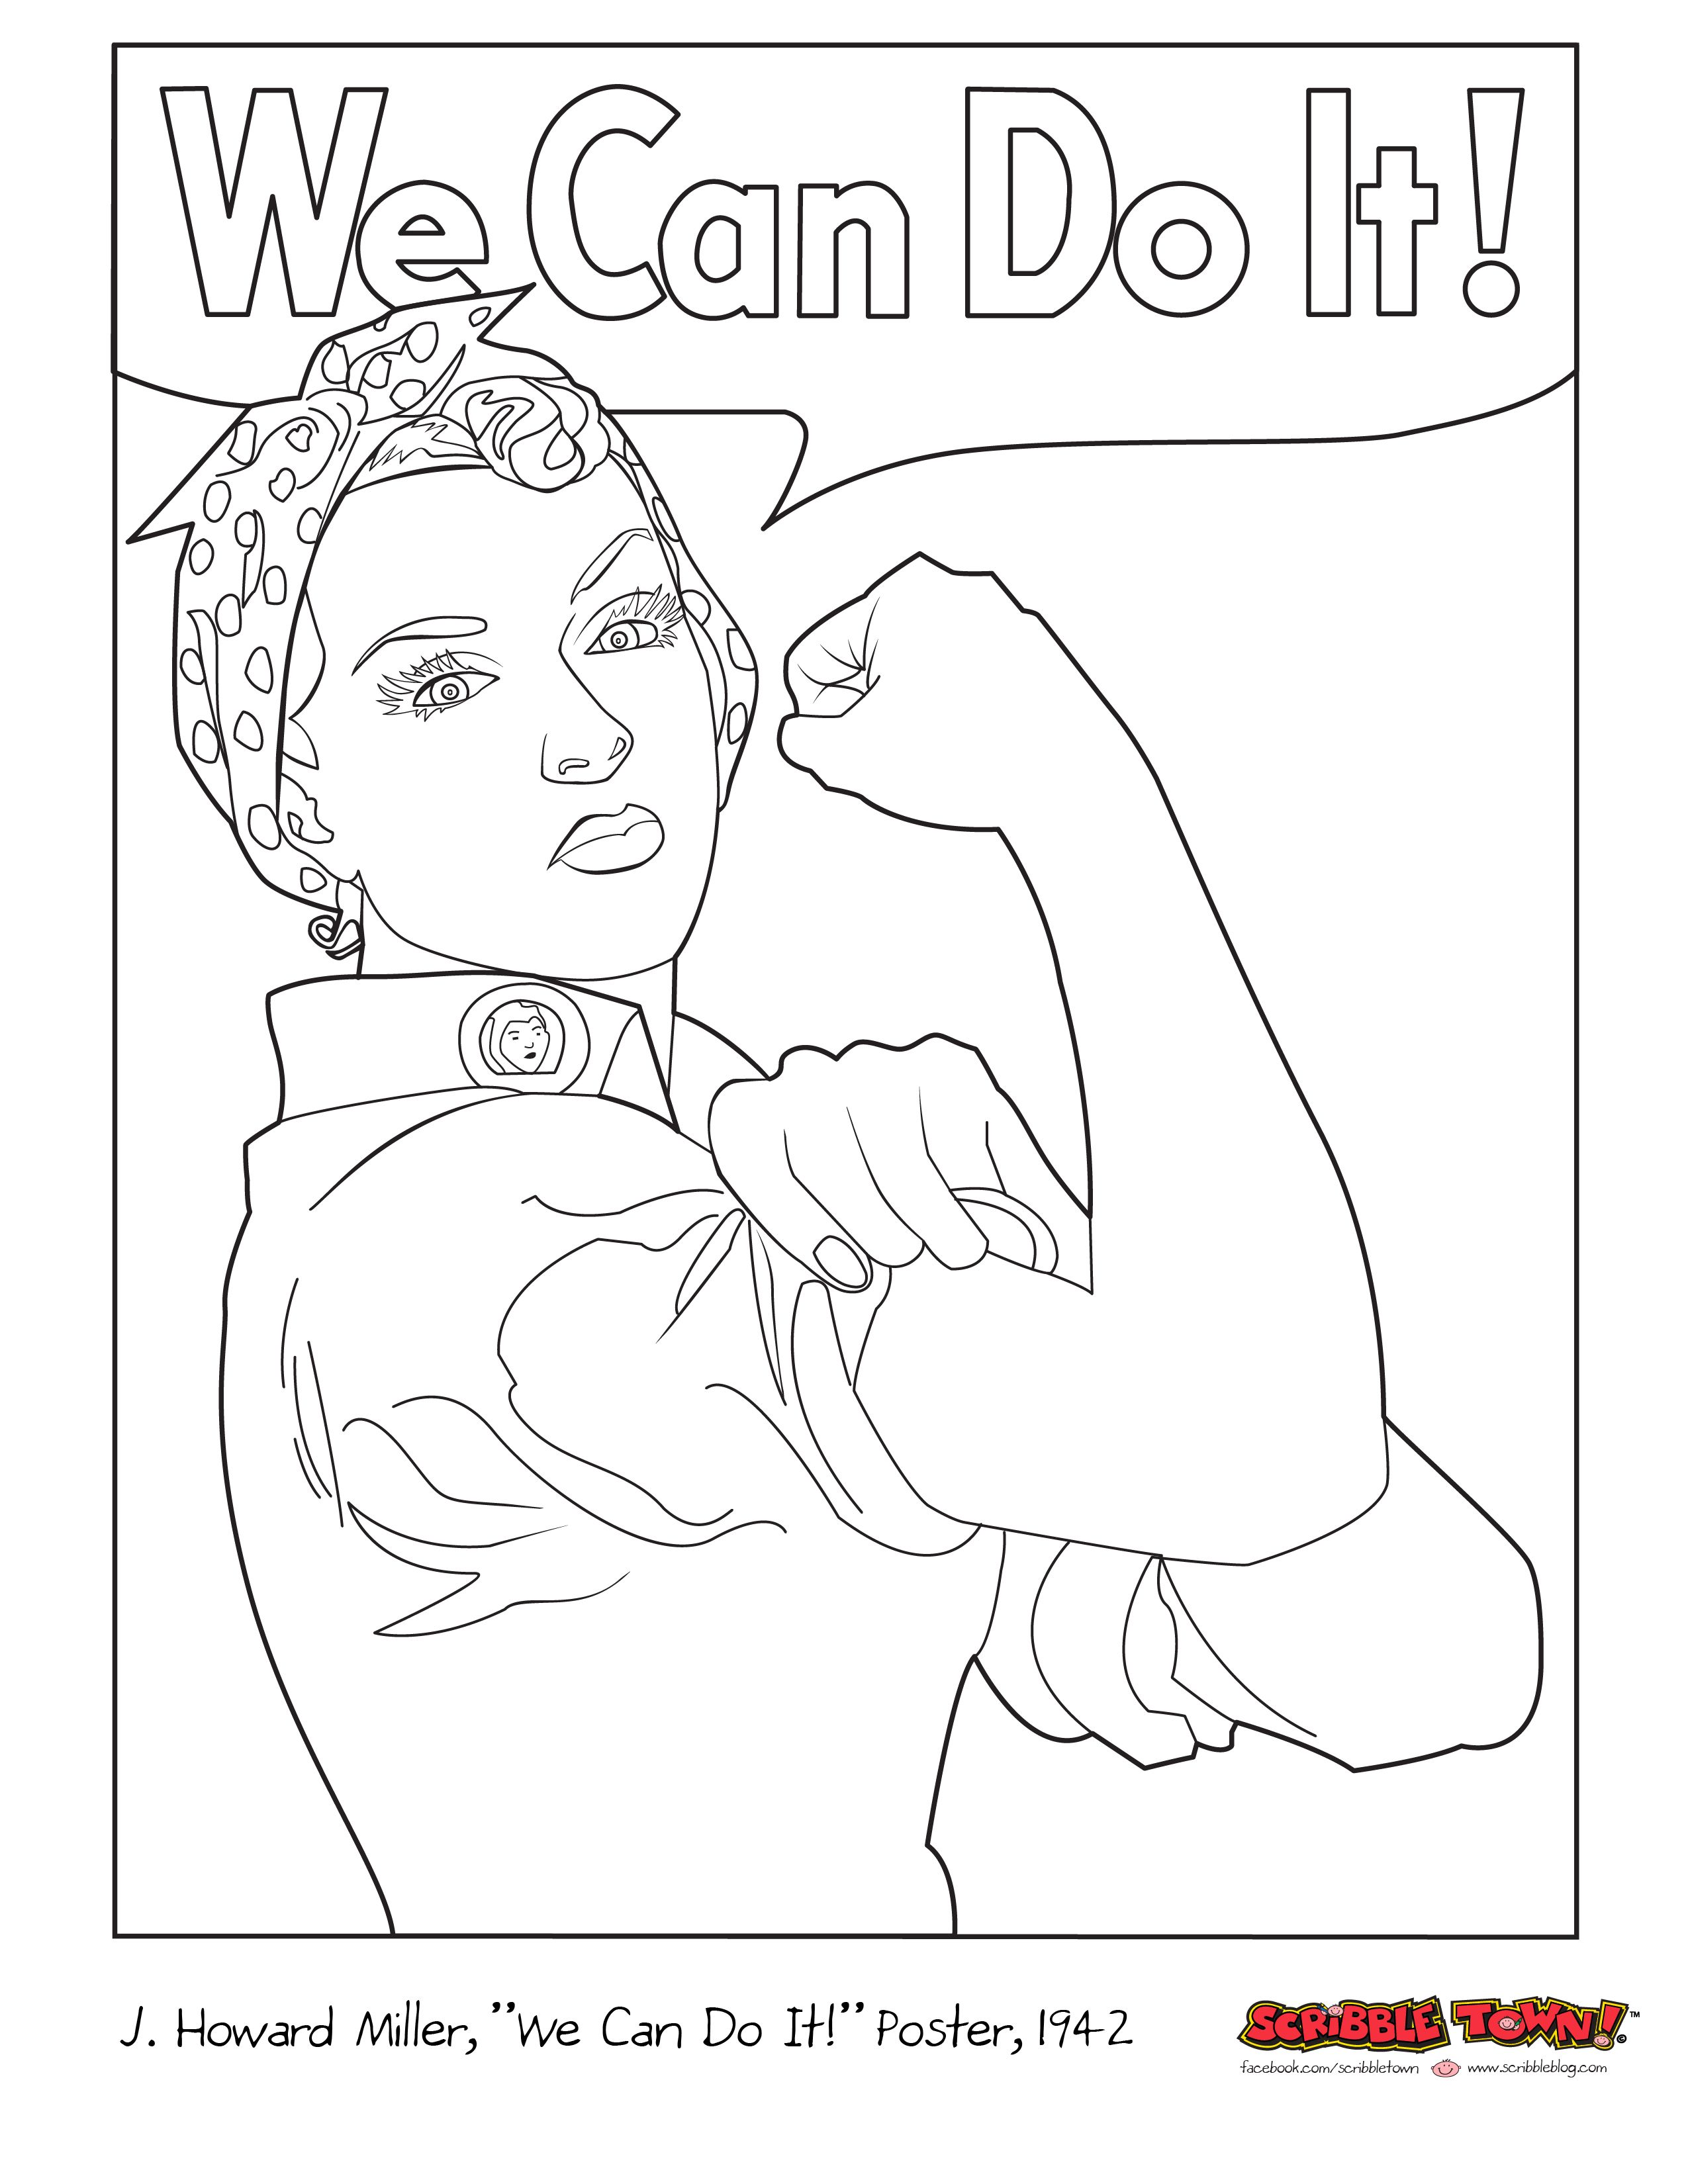 Women S Equality Day Coloring Sheets Google Search Coloring Pages Coloring Pages Inspirational Planet Coloring Pages [ 3300 x 2550 Pixel ]